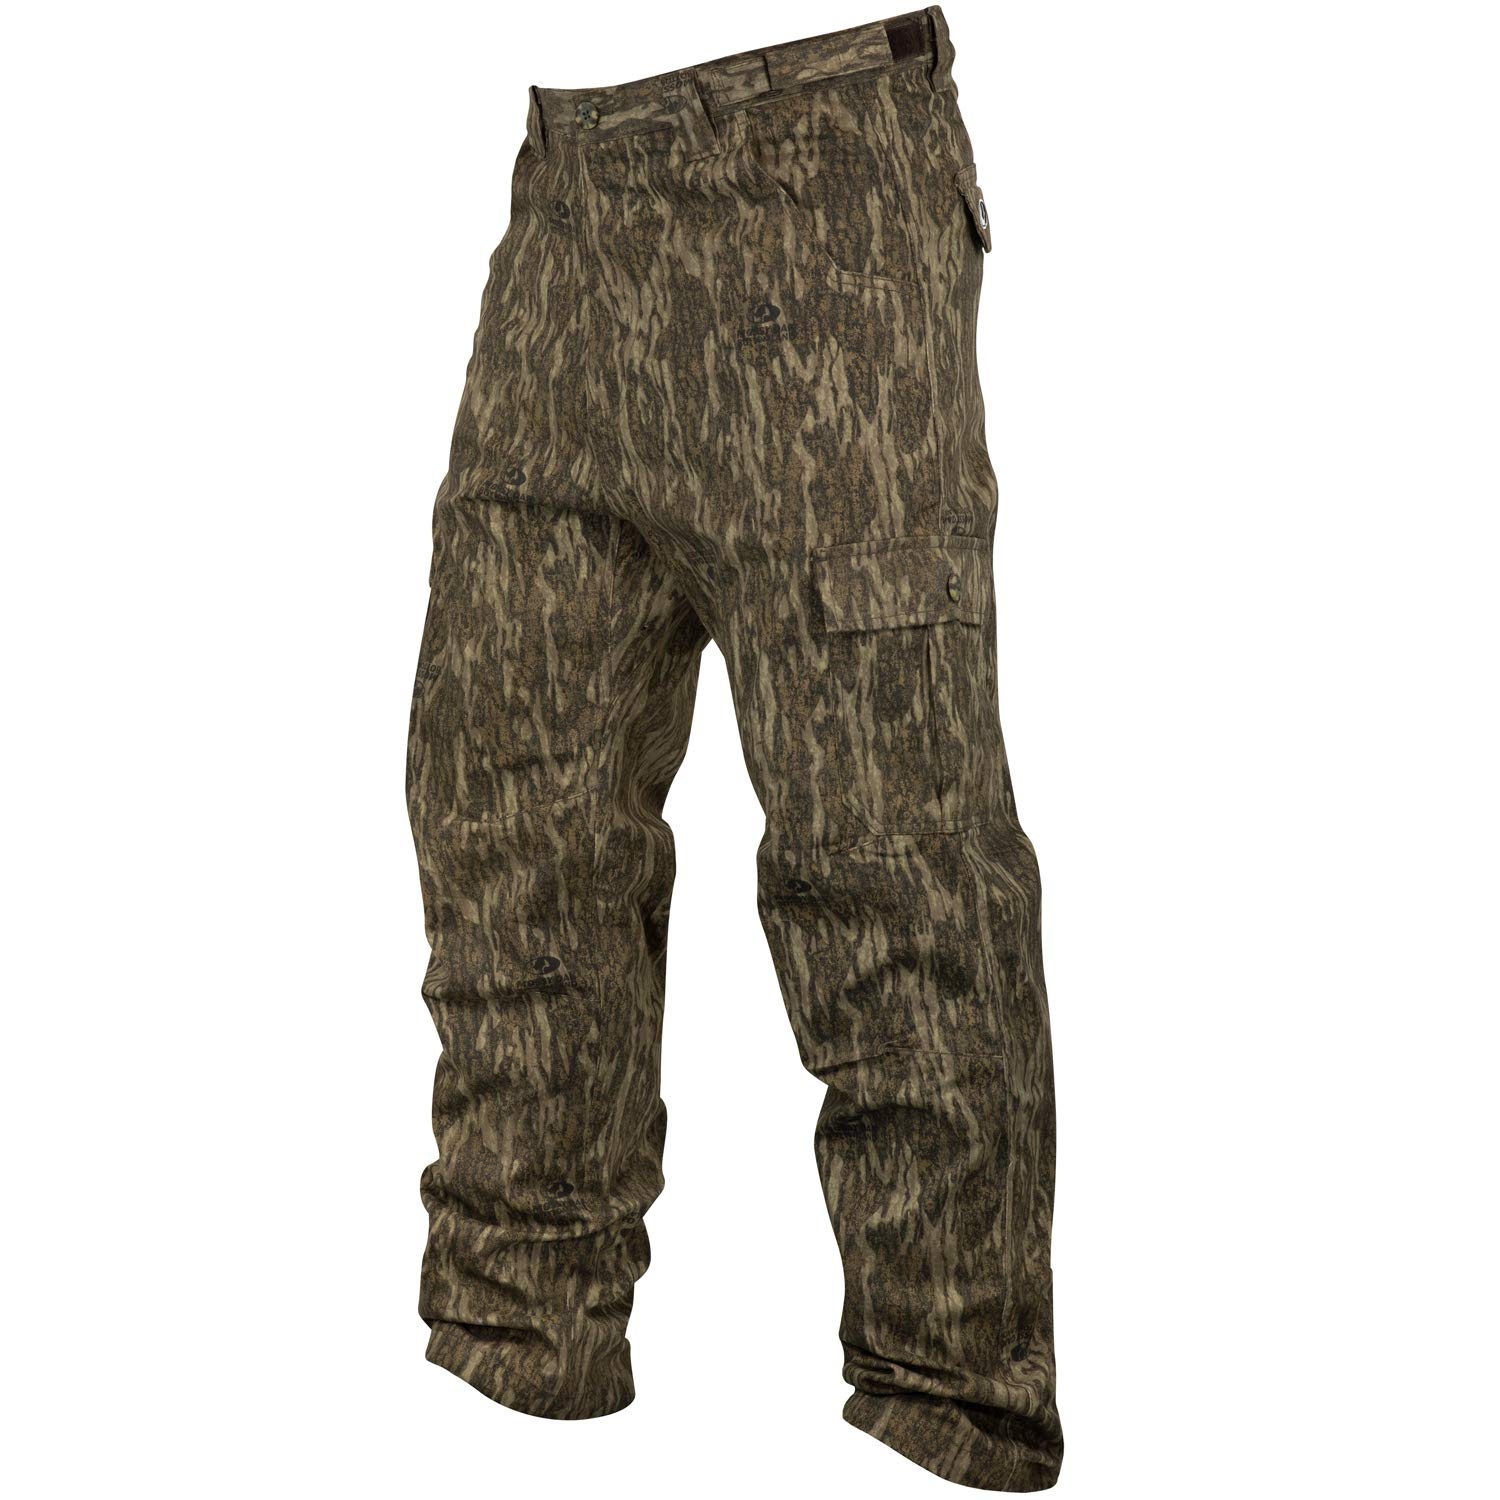 Mossy Oak Youth Cotton Mill 2.0 Camouflage Hunting Pant in Multiple Camo Patterns by Mossy Oak